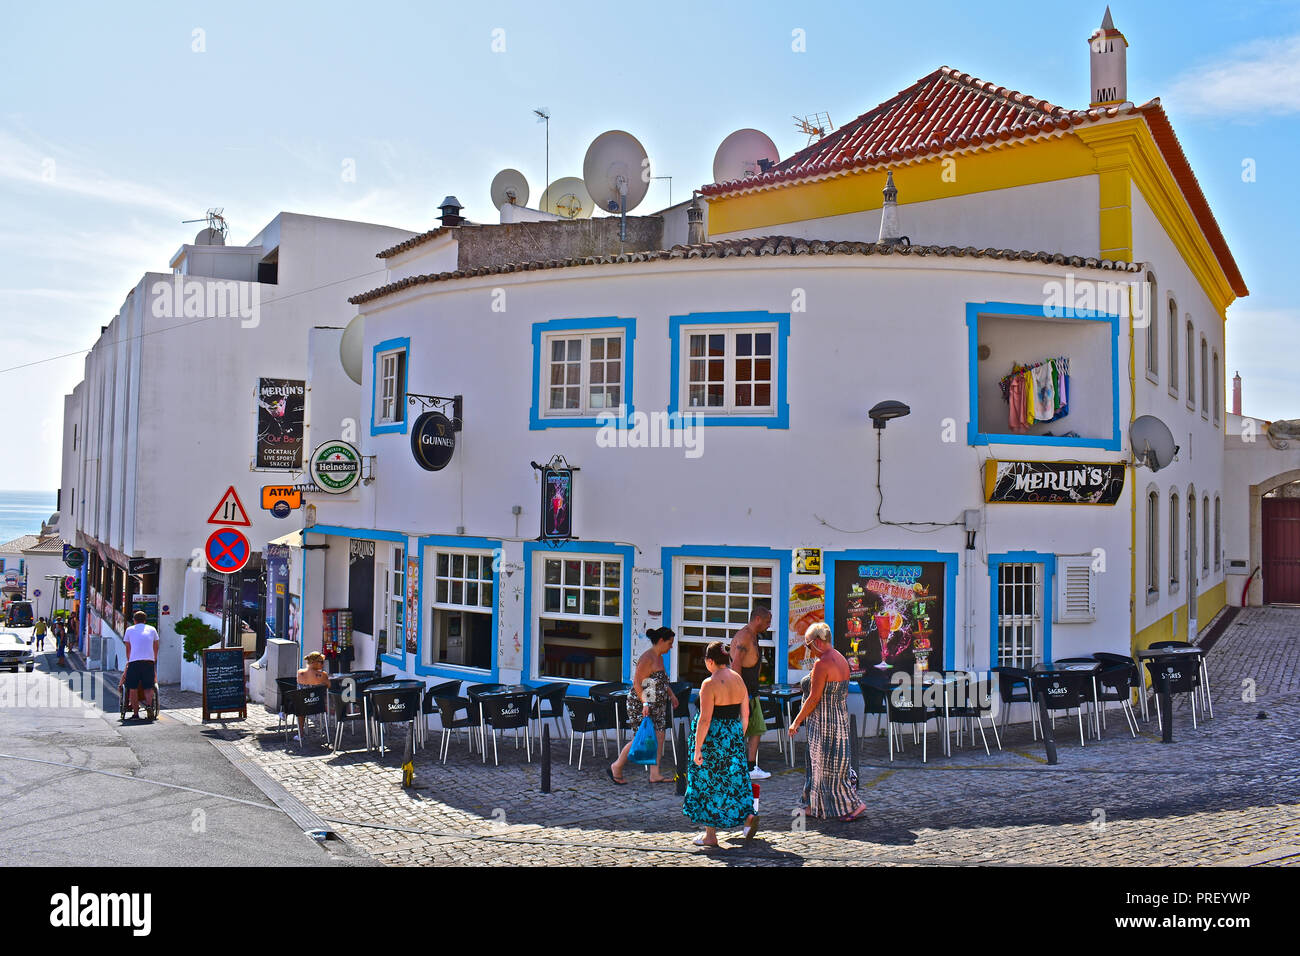 Merilin's Bar is a popular pub and bar in the old town of Albufeira, Algarve, Portugal - Stock Image